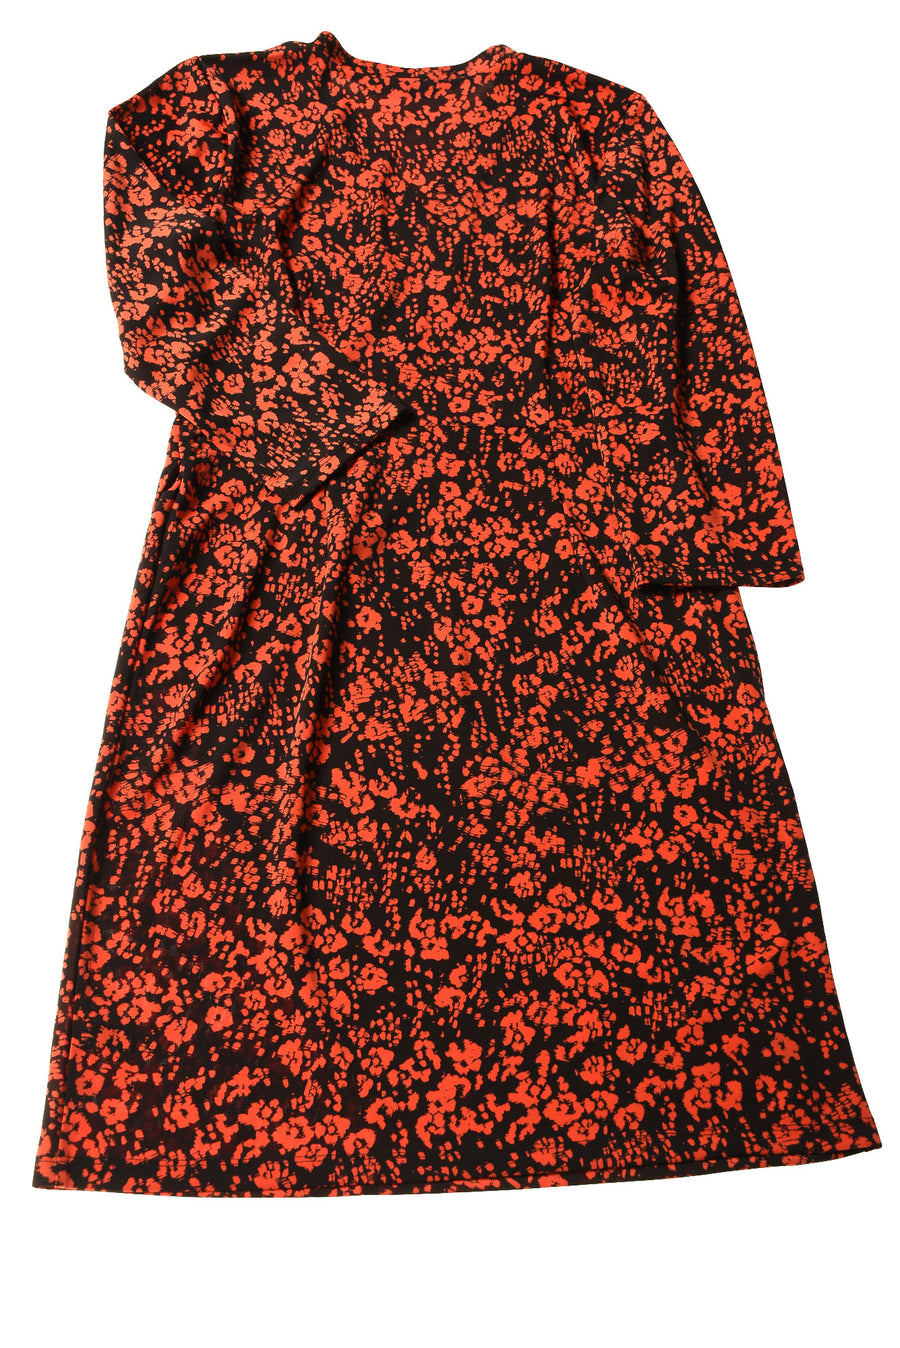 USED The Limited Women's Dress Medium Black & Orange / Print